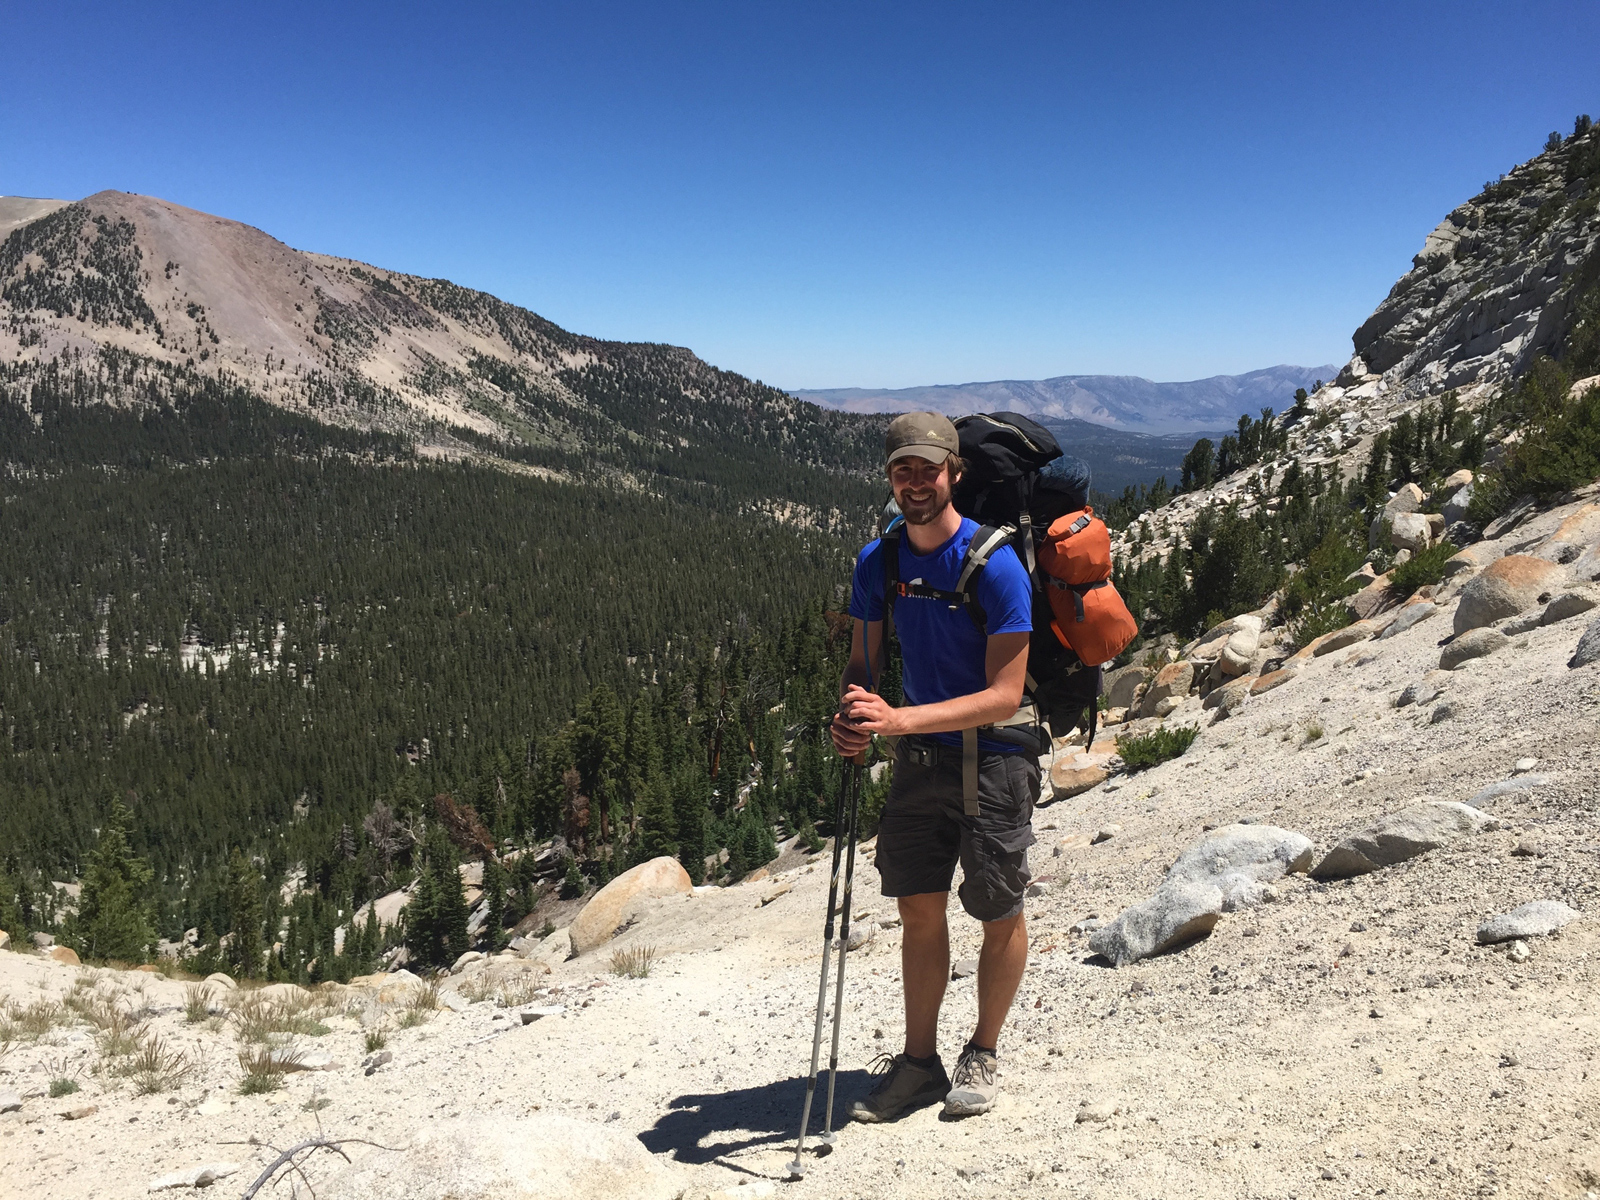 Carl from Belgium, south-bounding the trail from Tuolumne Meadows.